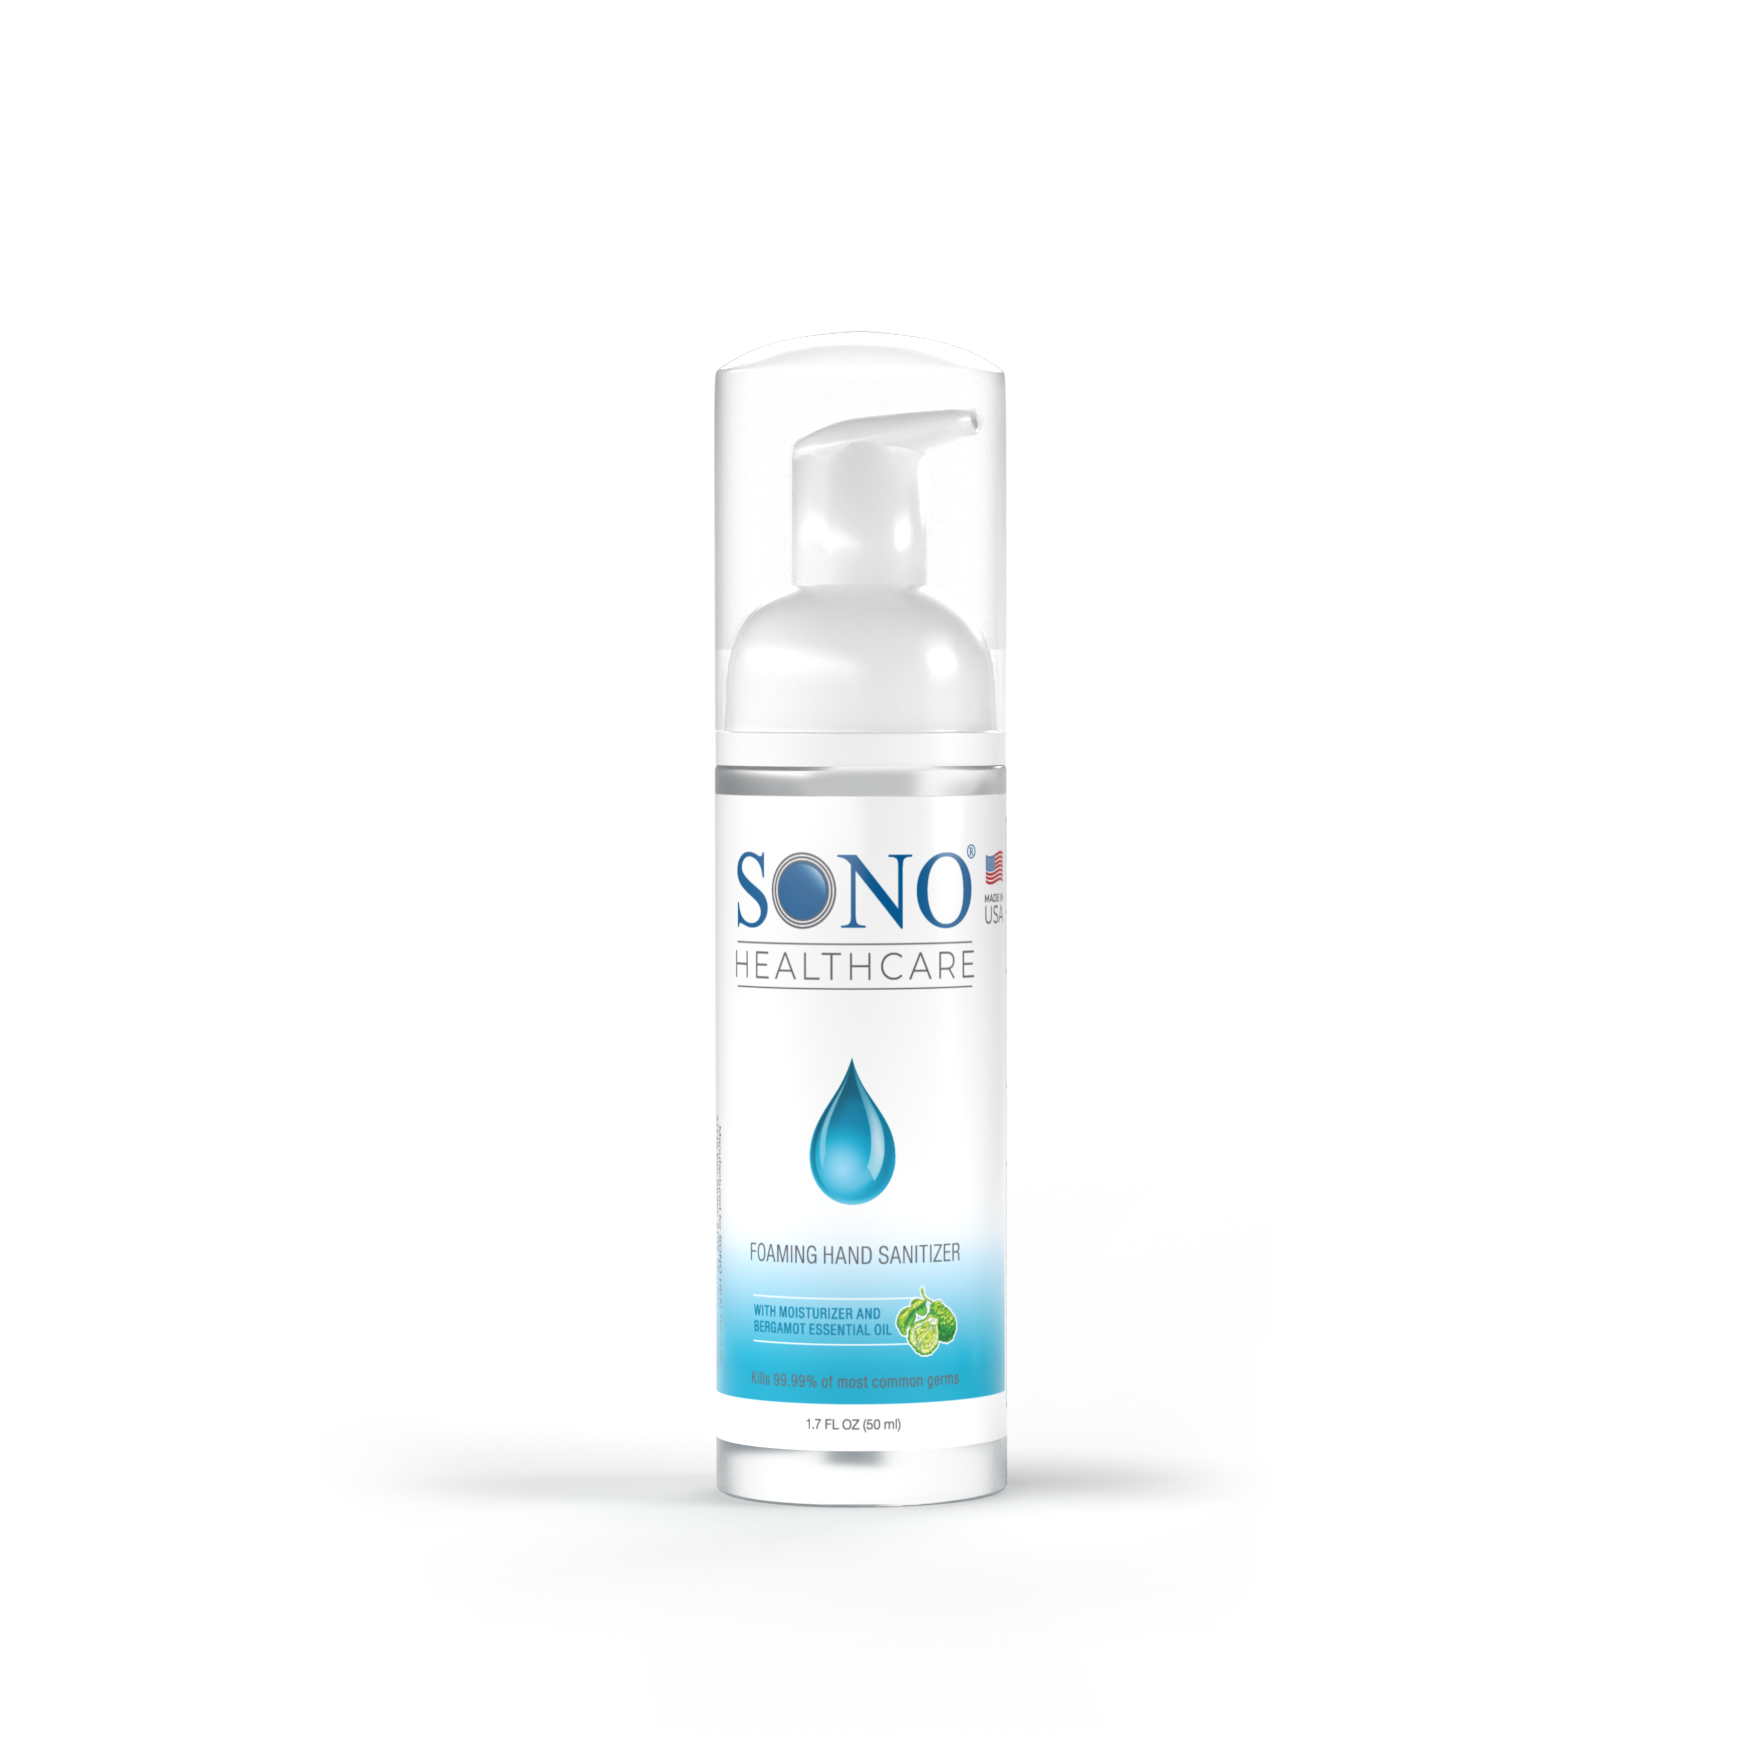 SONO Healthcare's 1.7 fl. oz. Foaming Hand Sanitizer based on Benzalkonium Chloride, which is a chemical that has been proven to be effective against COVID by Brigham Young University